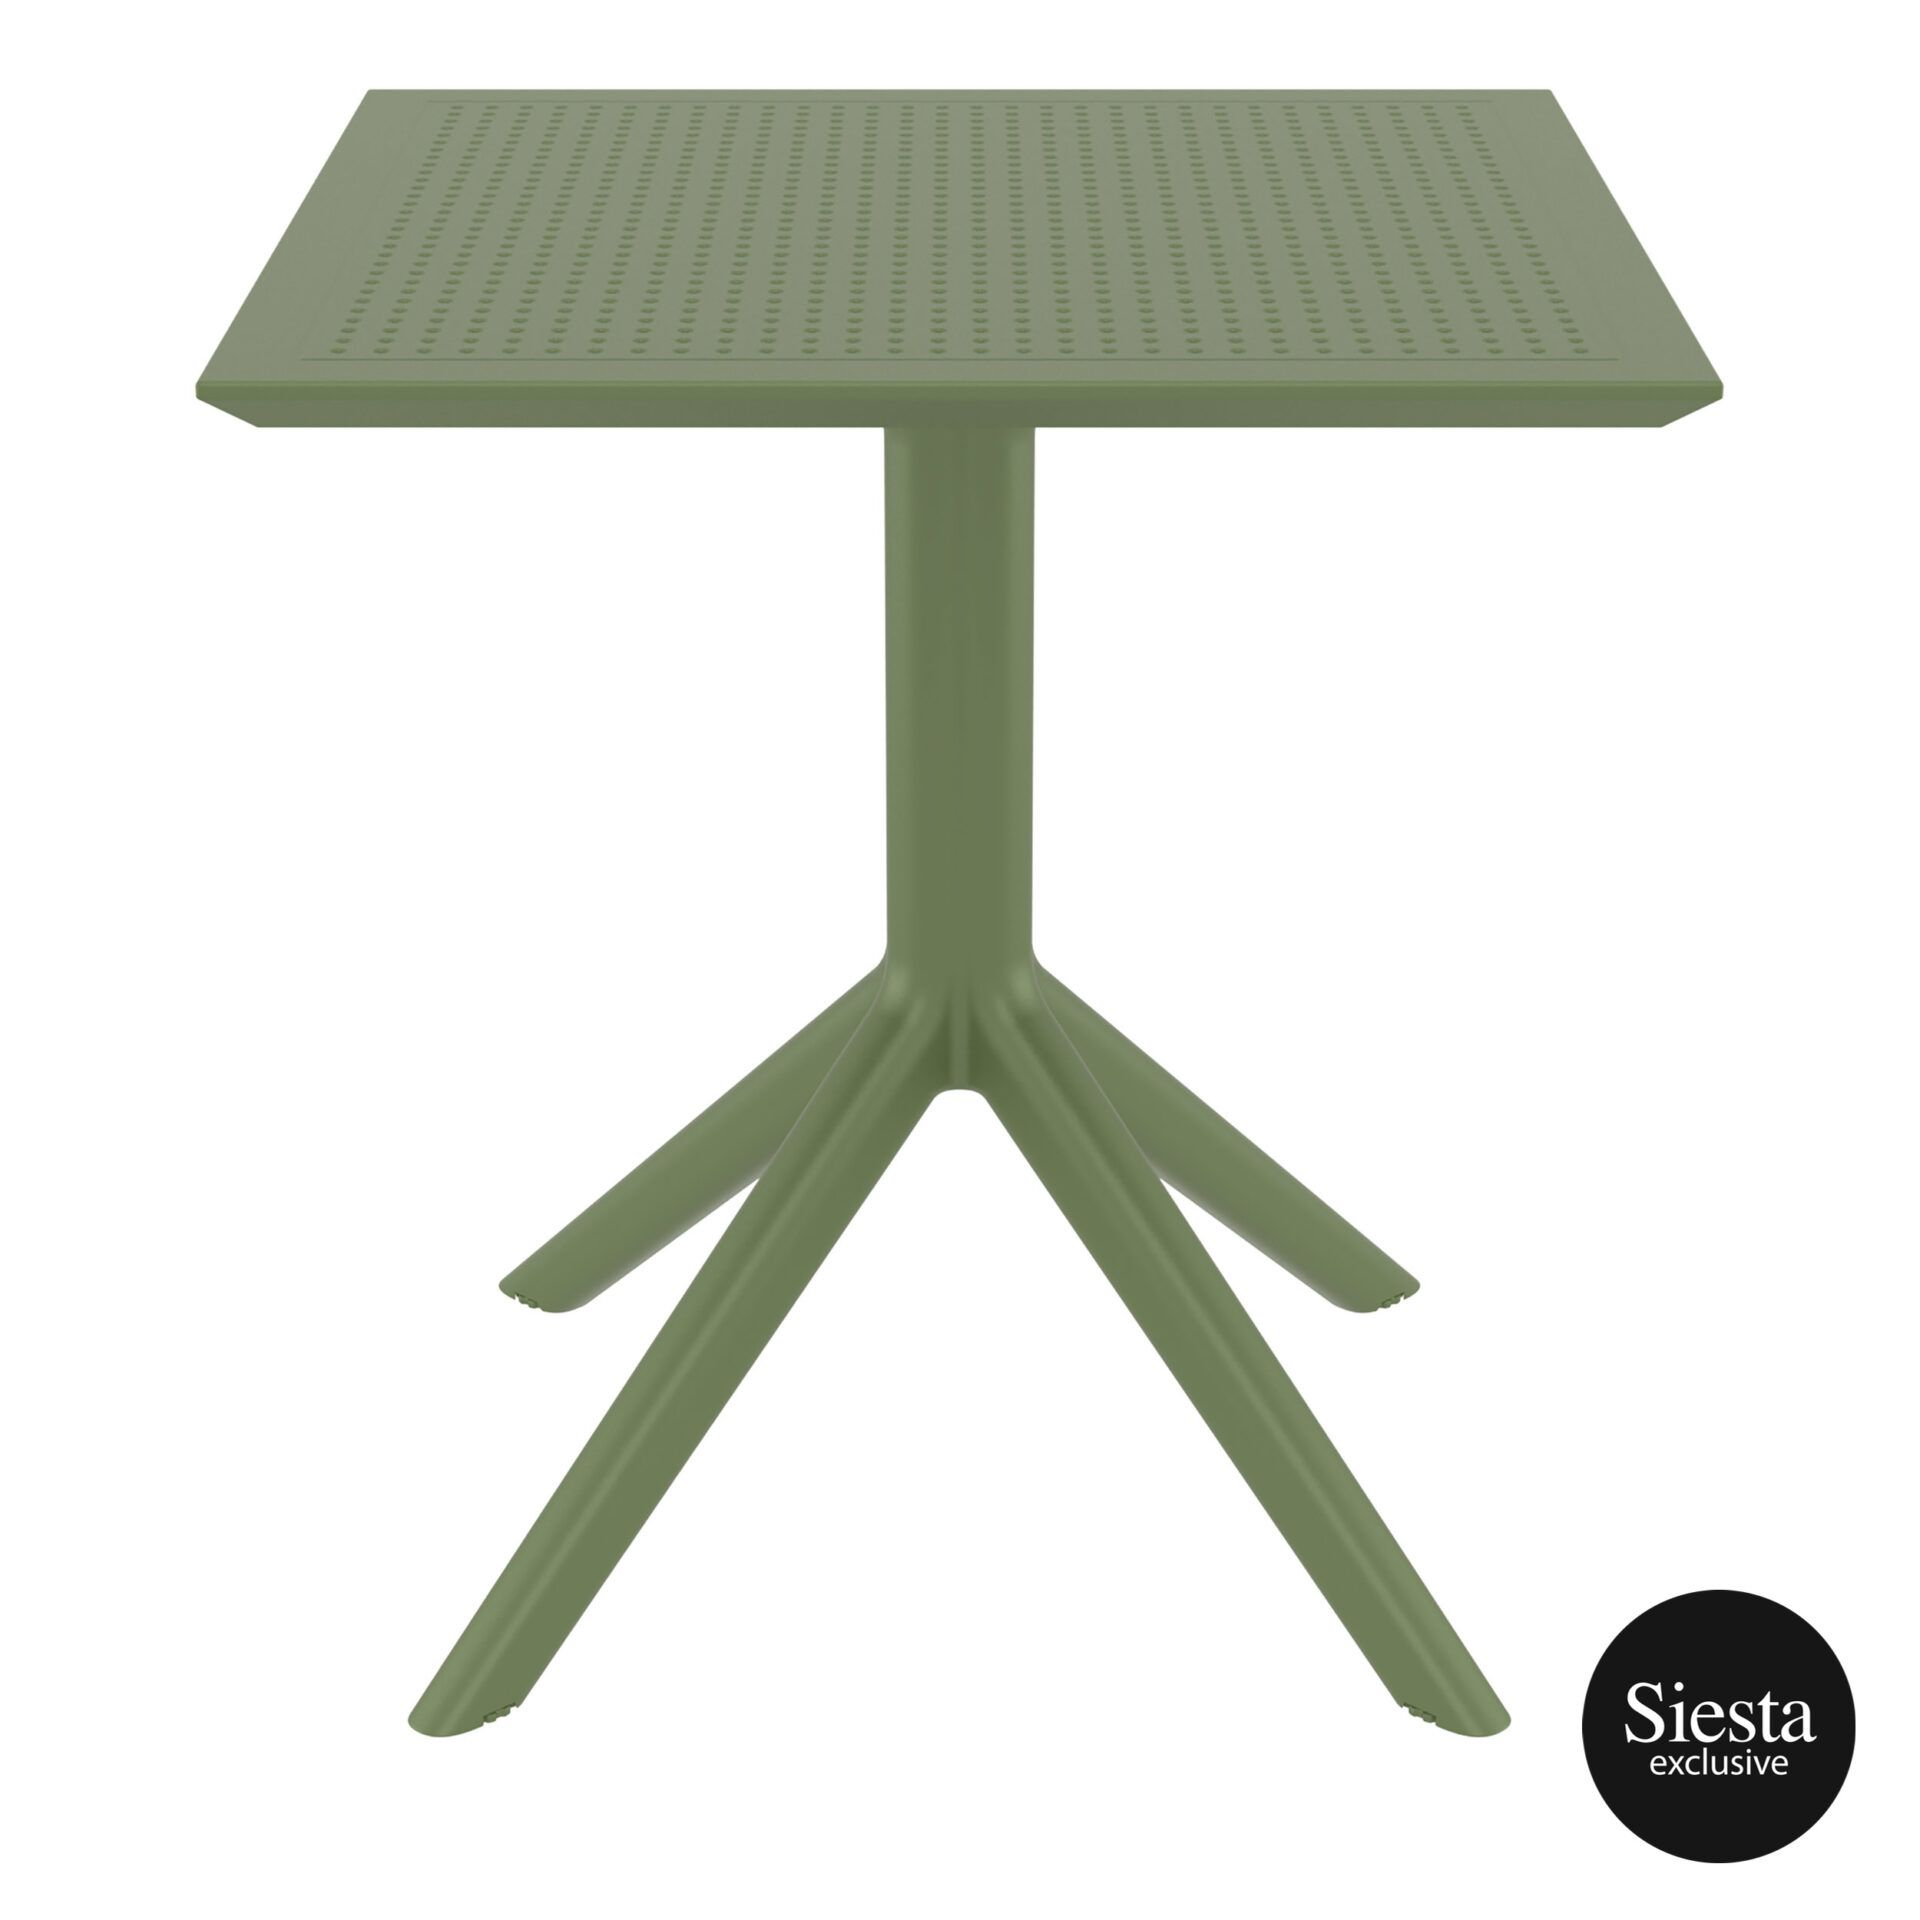 polypropylene outdoor cafe sky table 70 olive green front 1